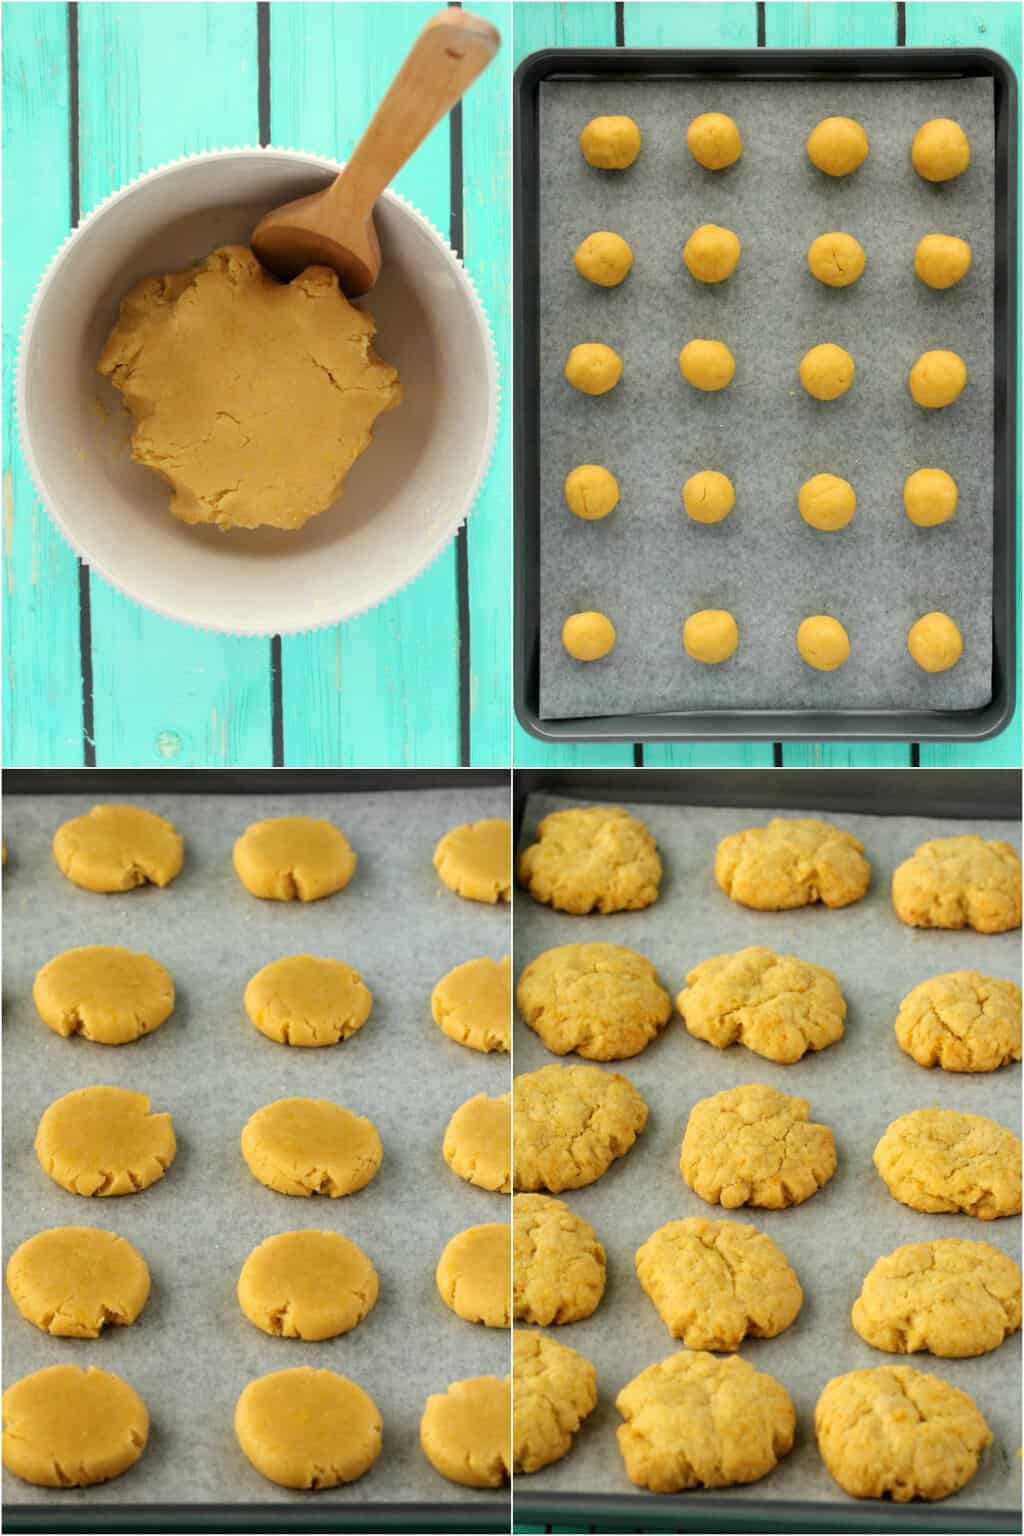 Step by step process photo collage for how to make vegan lemon cookies.